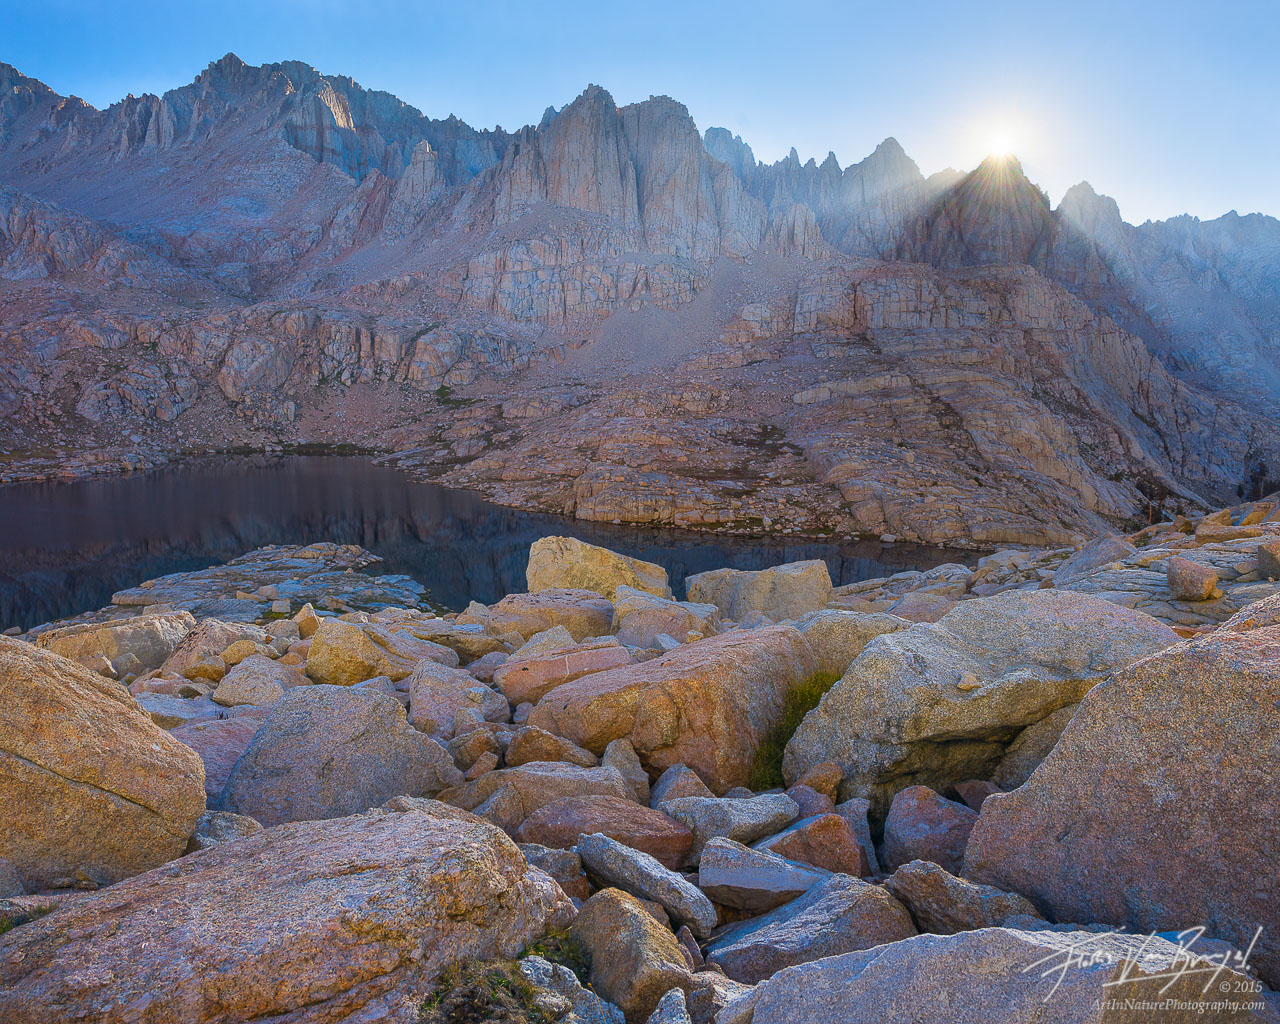 Sierra Crest, Sunshine, Granite, photo